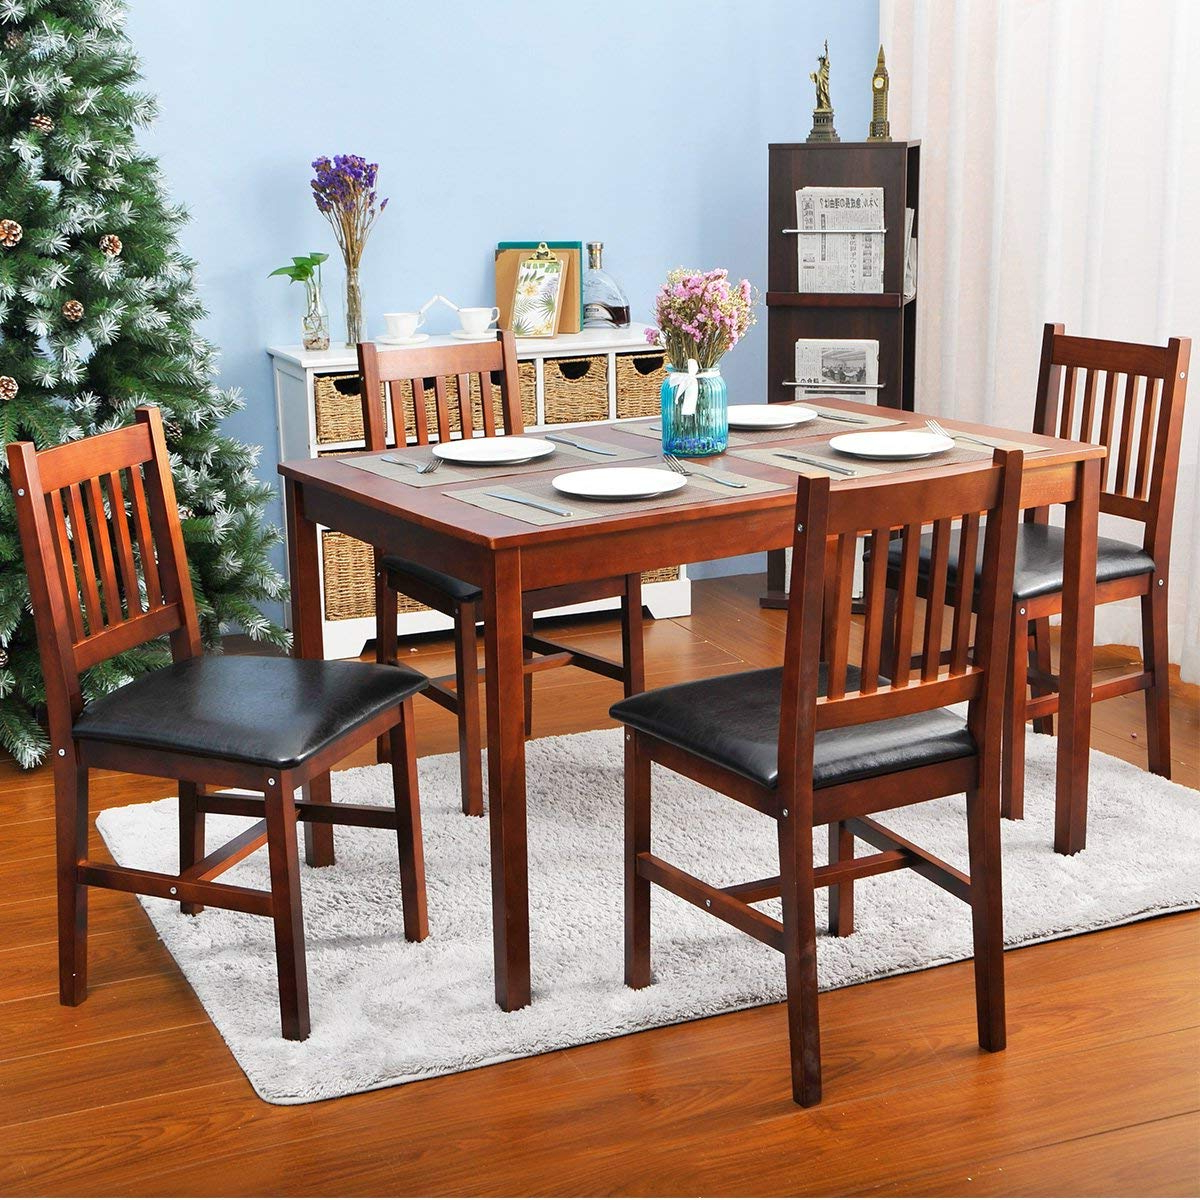 Trendy Dining Table Chair Set & Simple Living Olin Dining Sets Sc 1 St For Kieffer 5 Piece Dining Sets (Gallery 20 of 20)